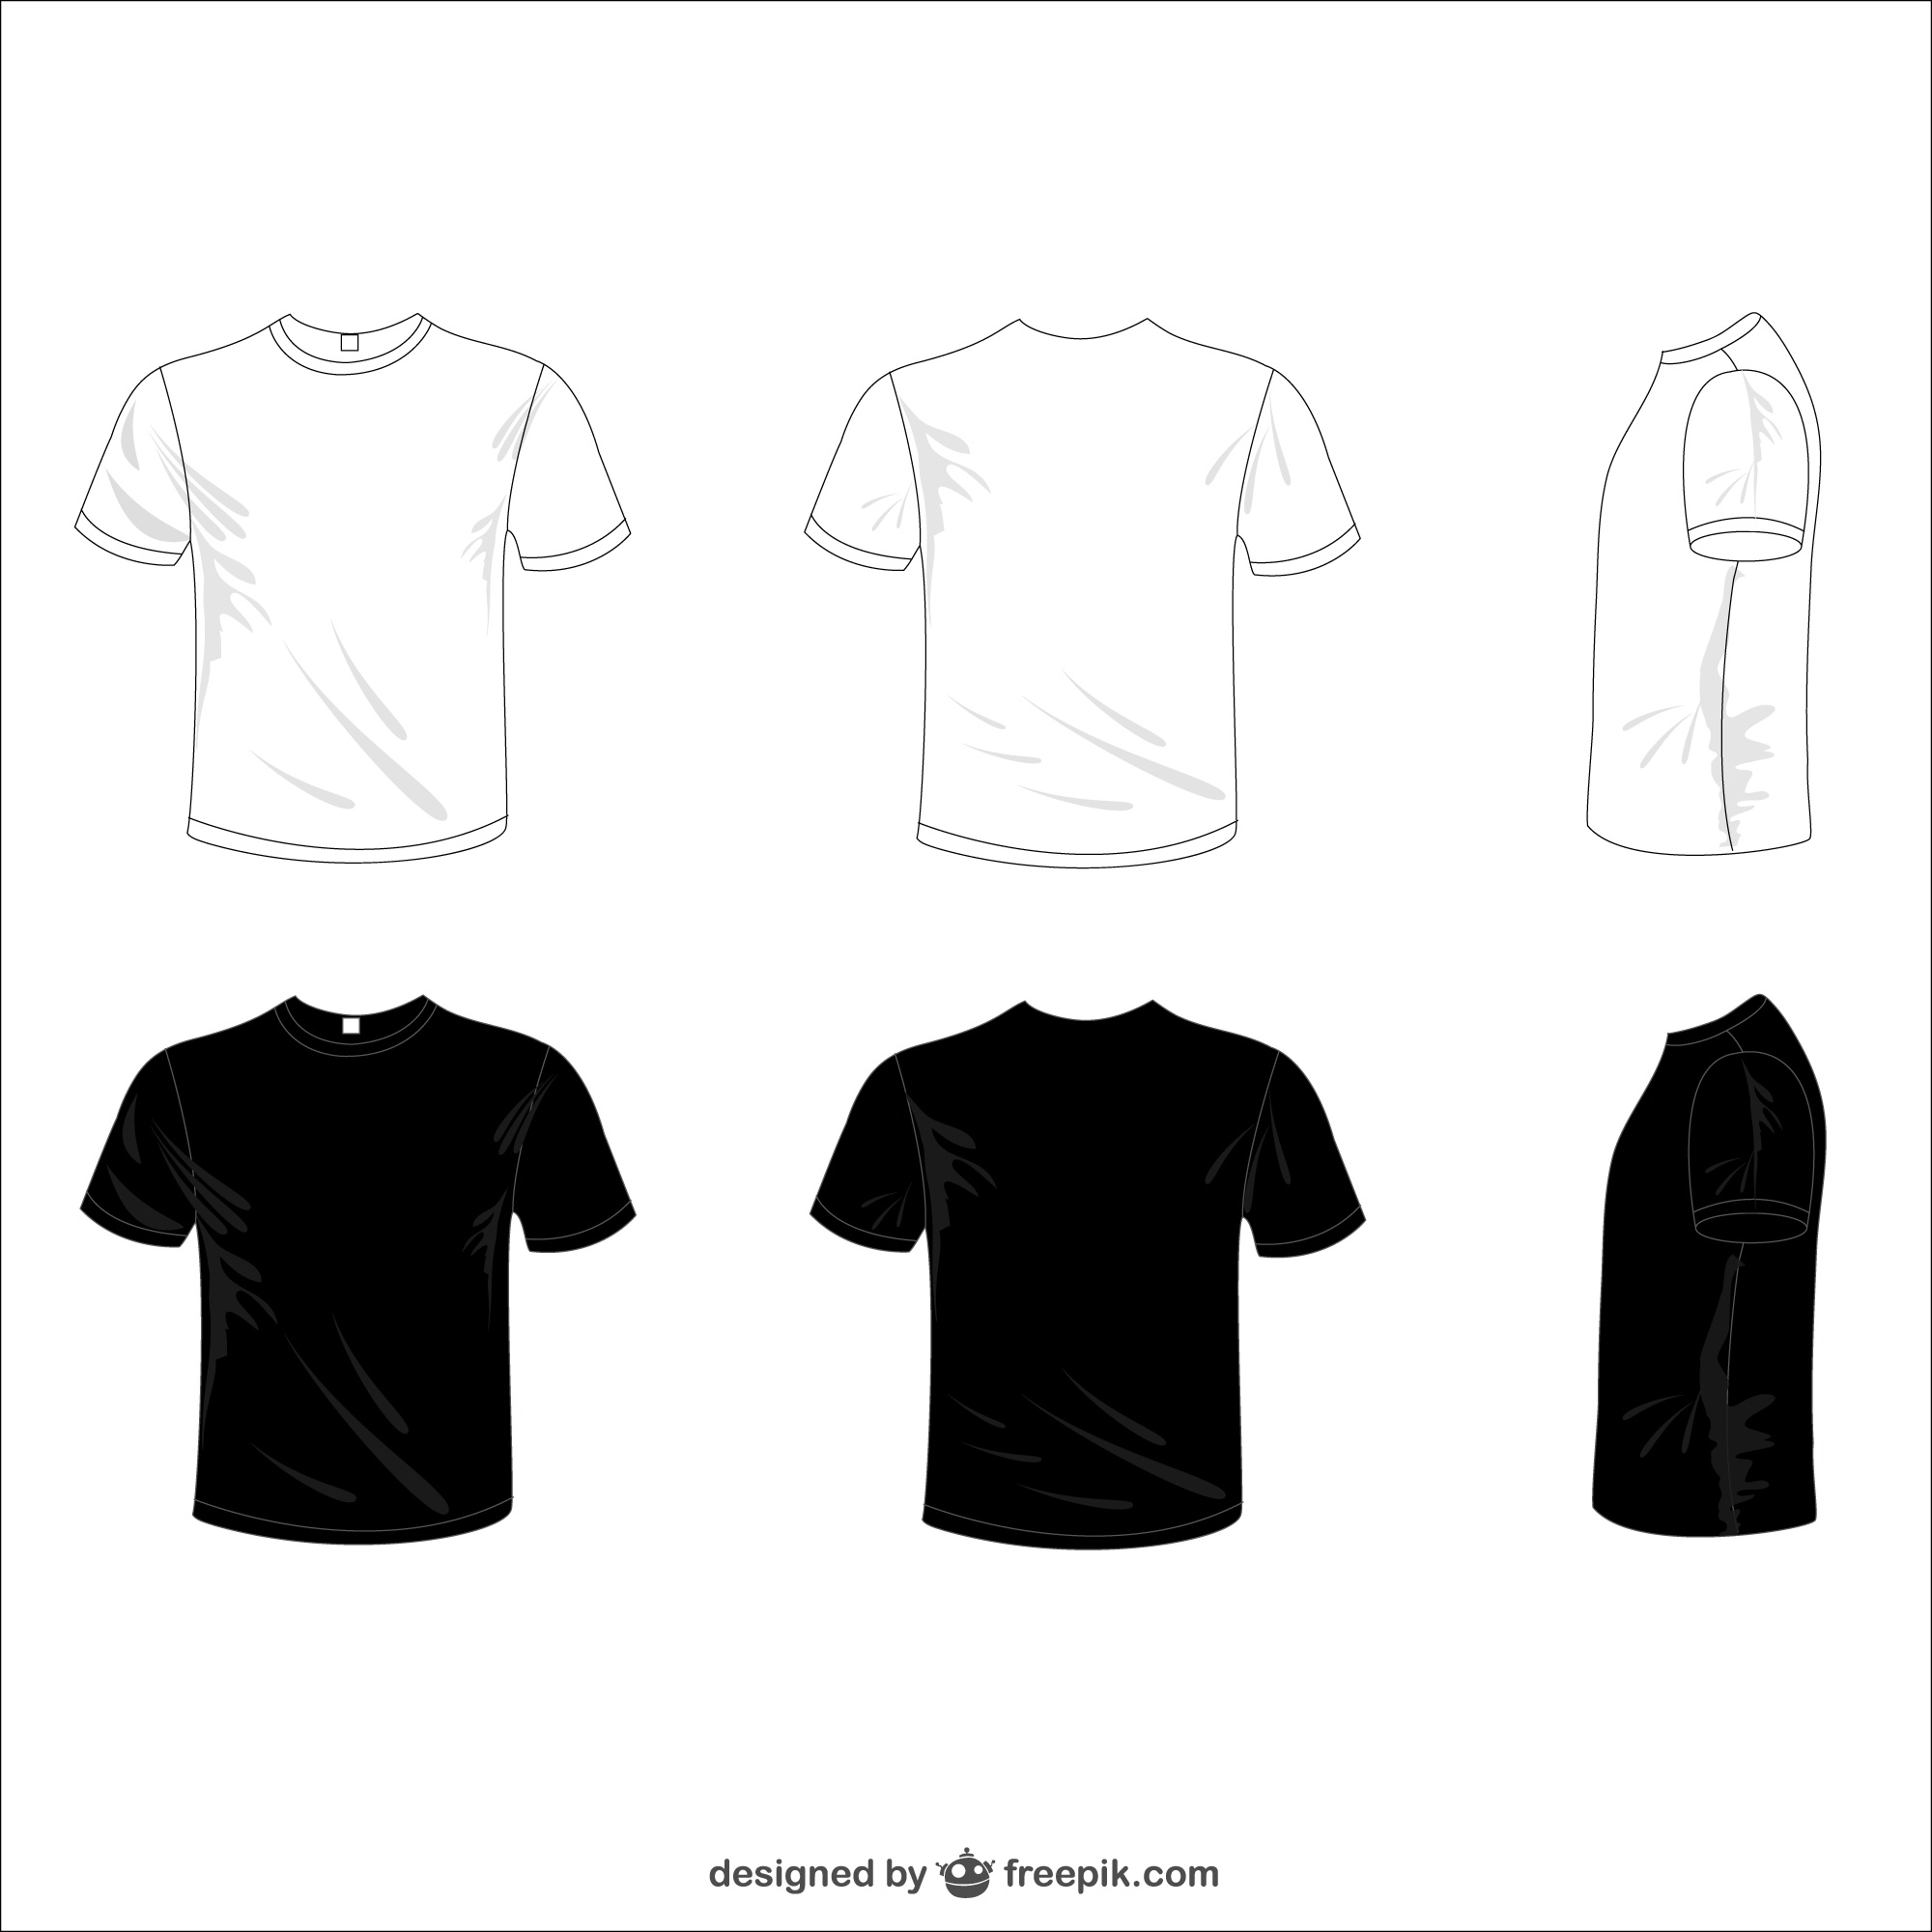 White and black tees